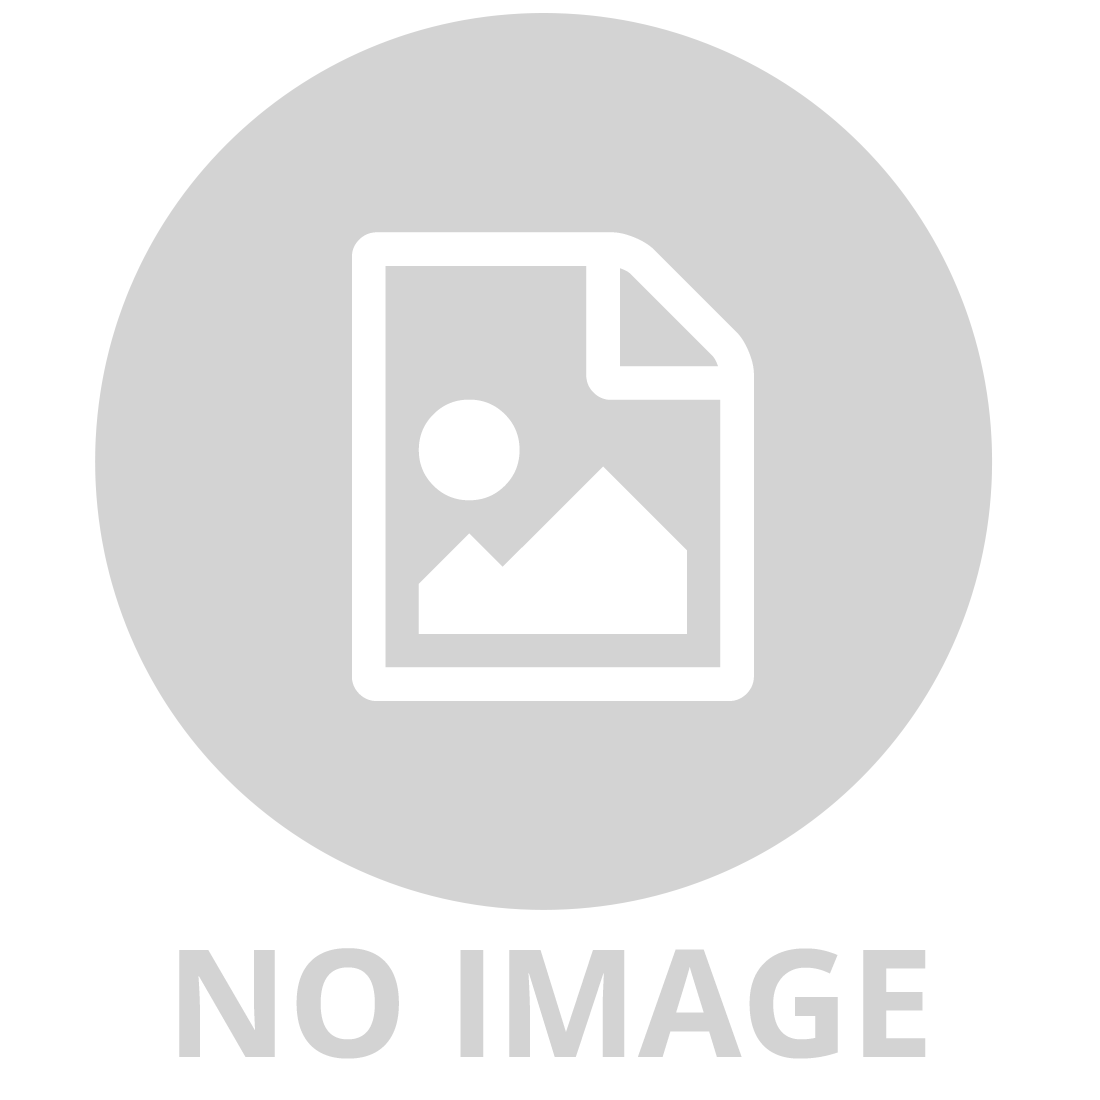 LEGO STARWARS 75265 T-16 SKYHOPPER VS BANTHA MICROFIGHTERS